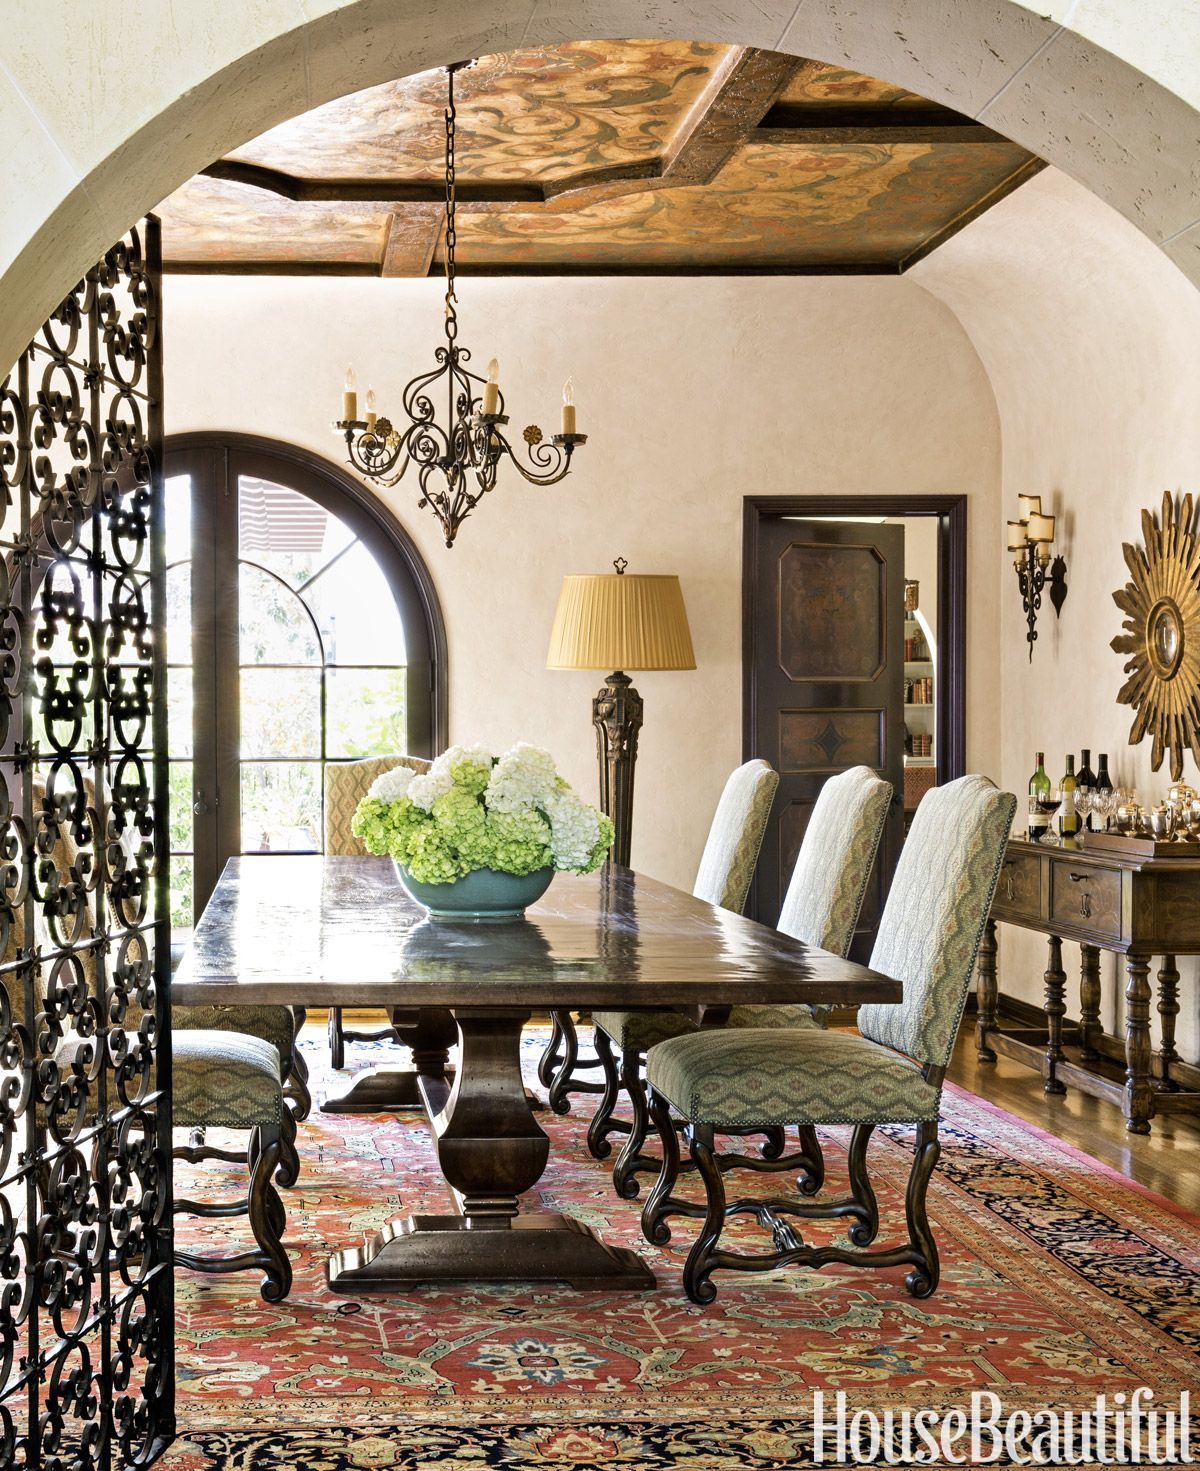 Tour a 1920s Spanish Colonial Revival House With Warmth and ...